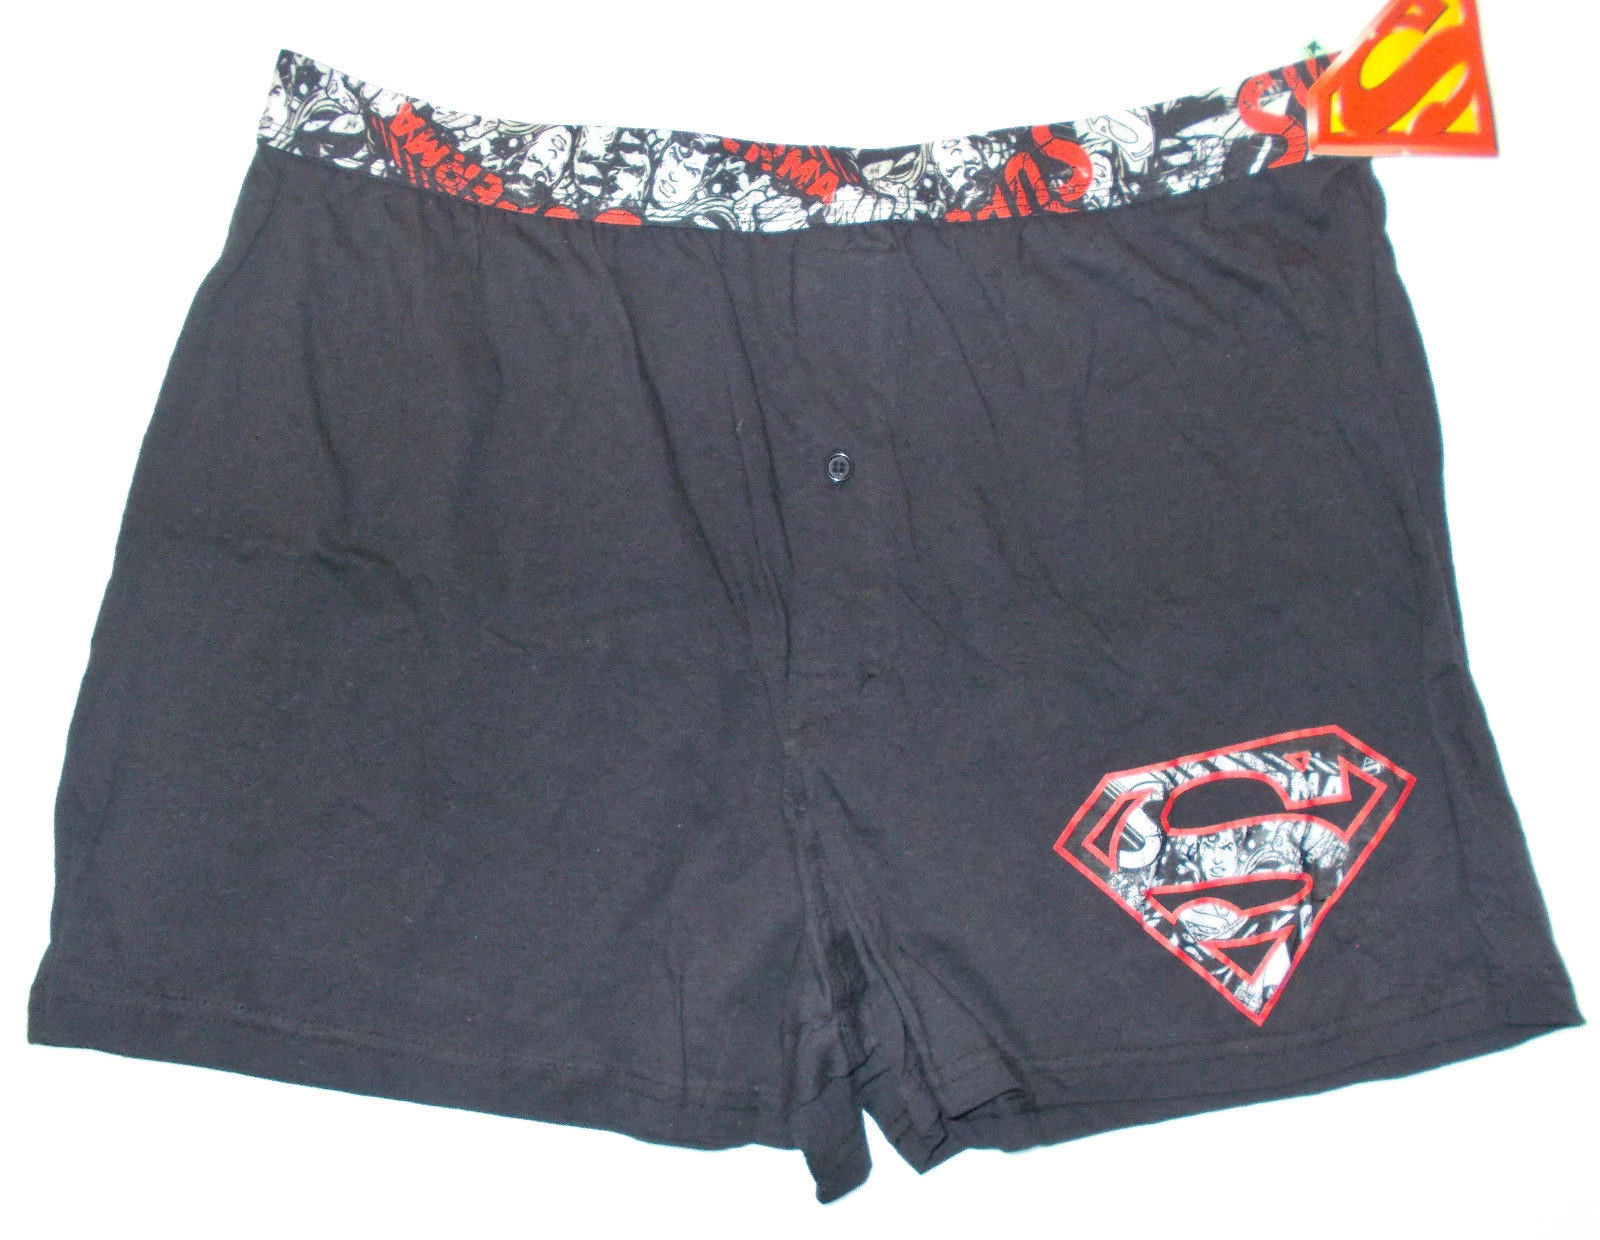 Primary image for Super-Man Mens Boxer Brief Sizes Small 28-30  NWT